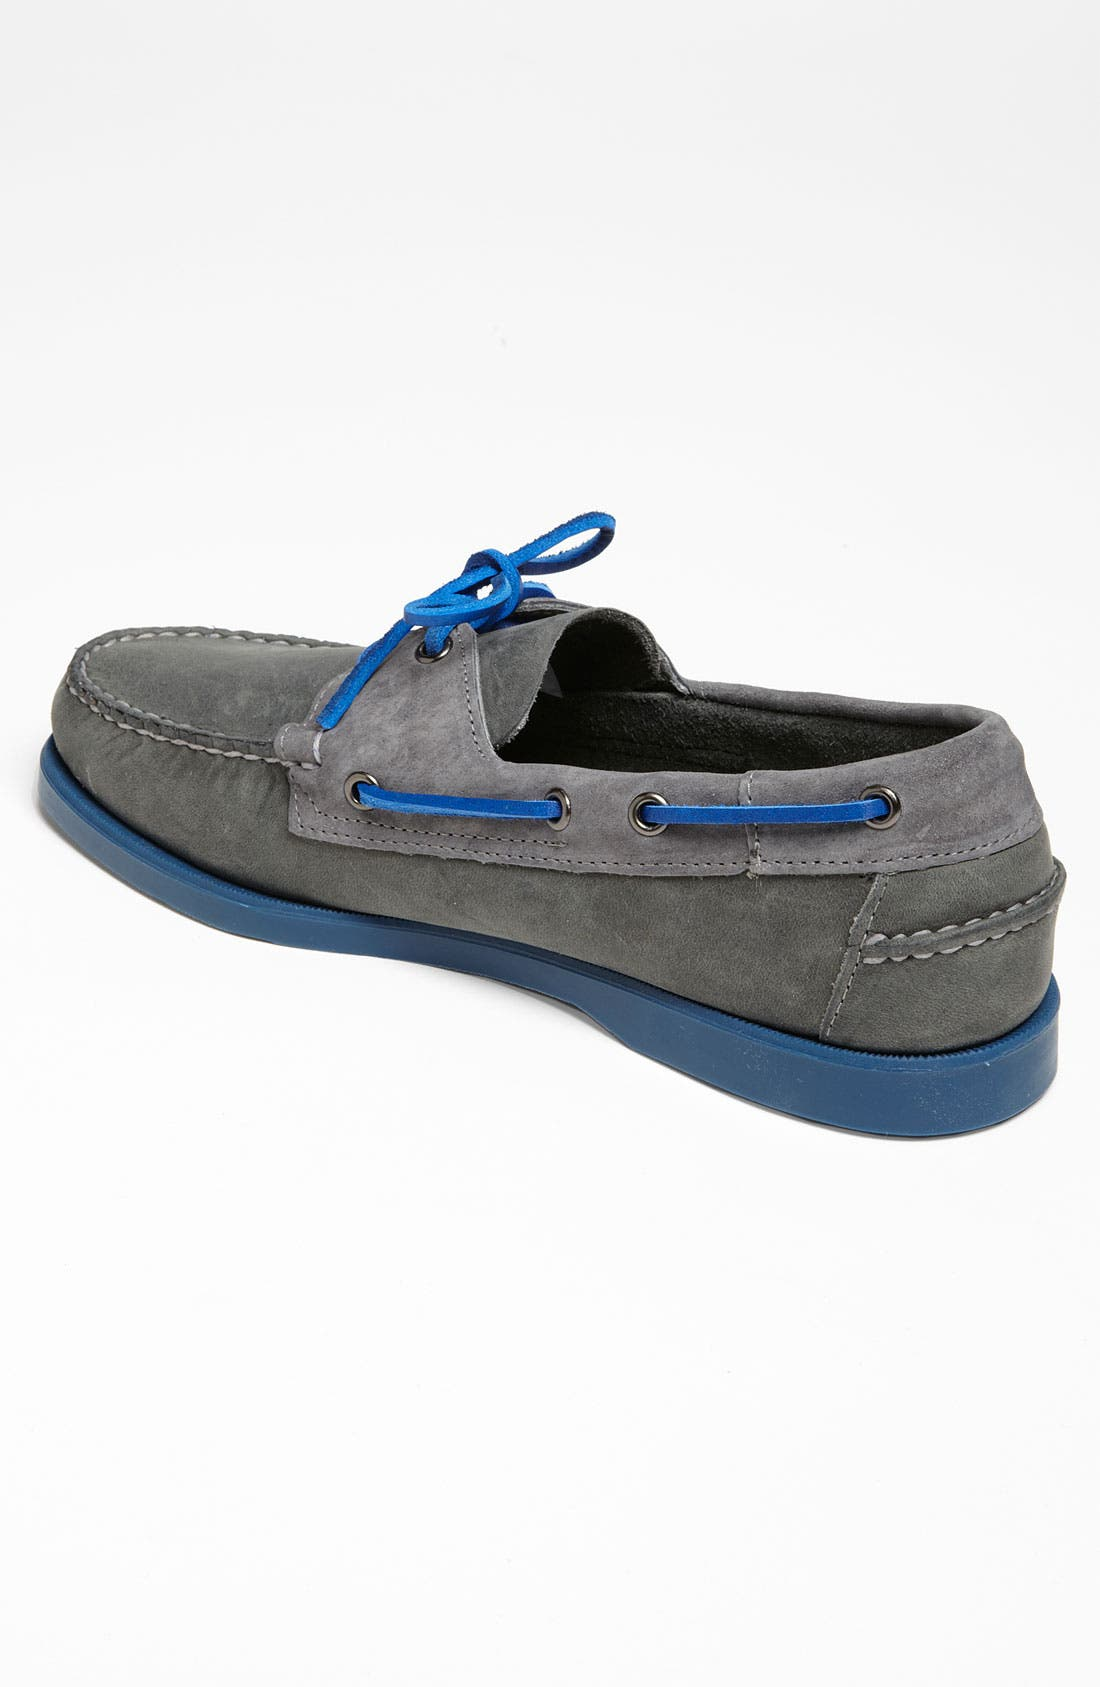 Alternate Image 2  - Sebago 'Spinnaker' Boat Shoe (Men)